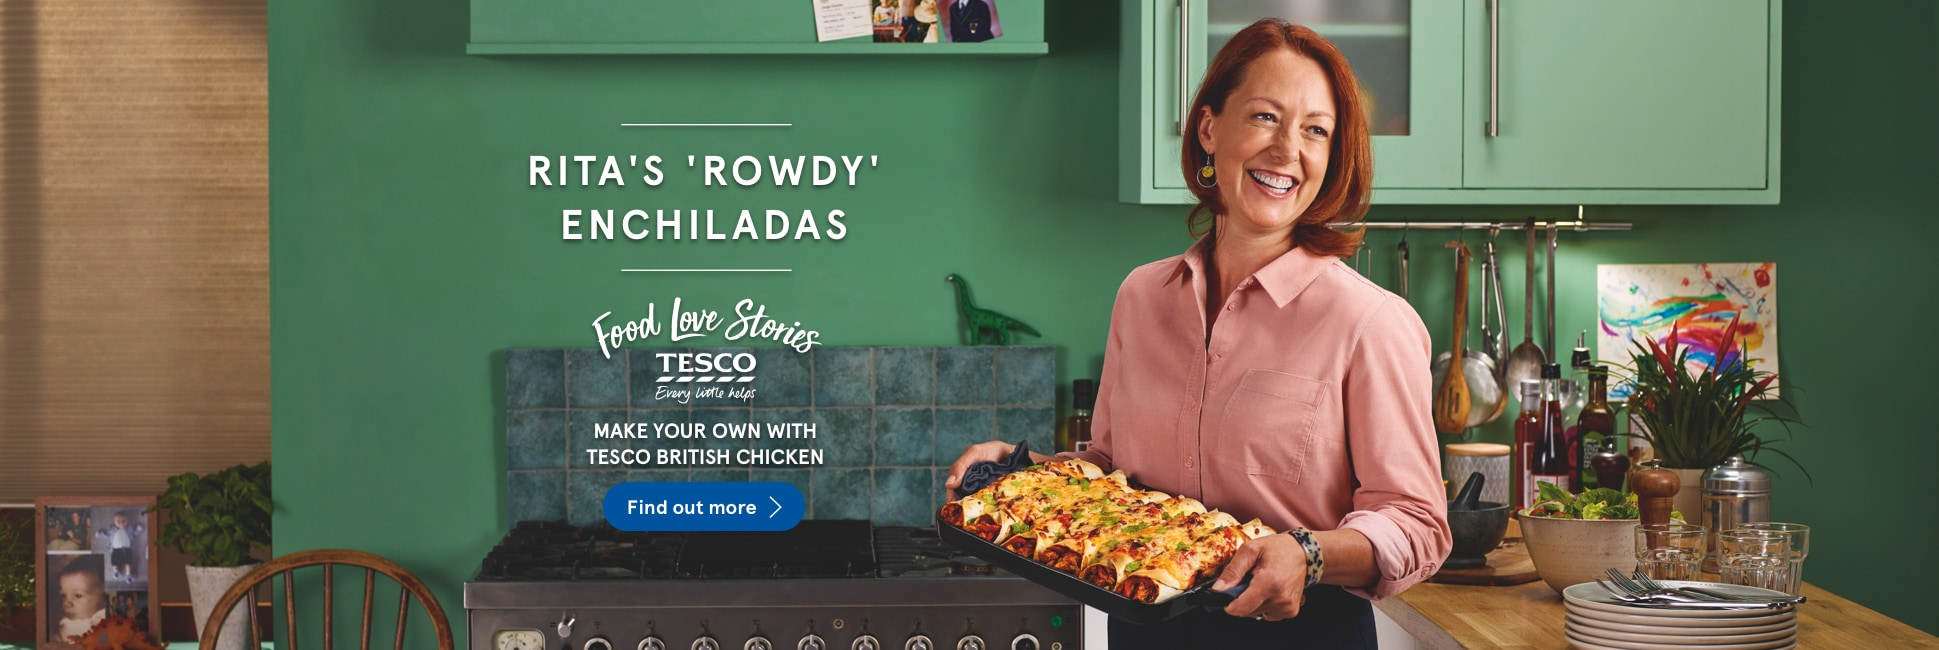 Make your own Rita's 'rowdy' enchiladas with Tesco British chicken